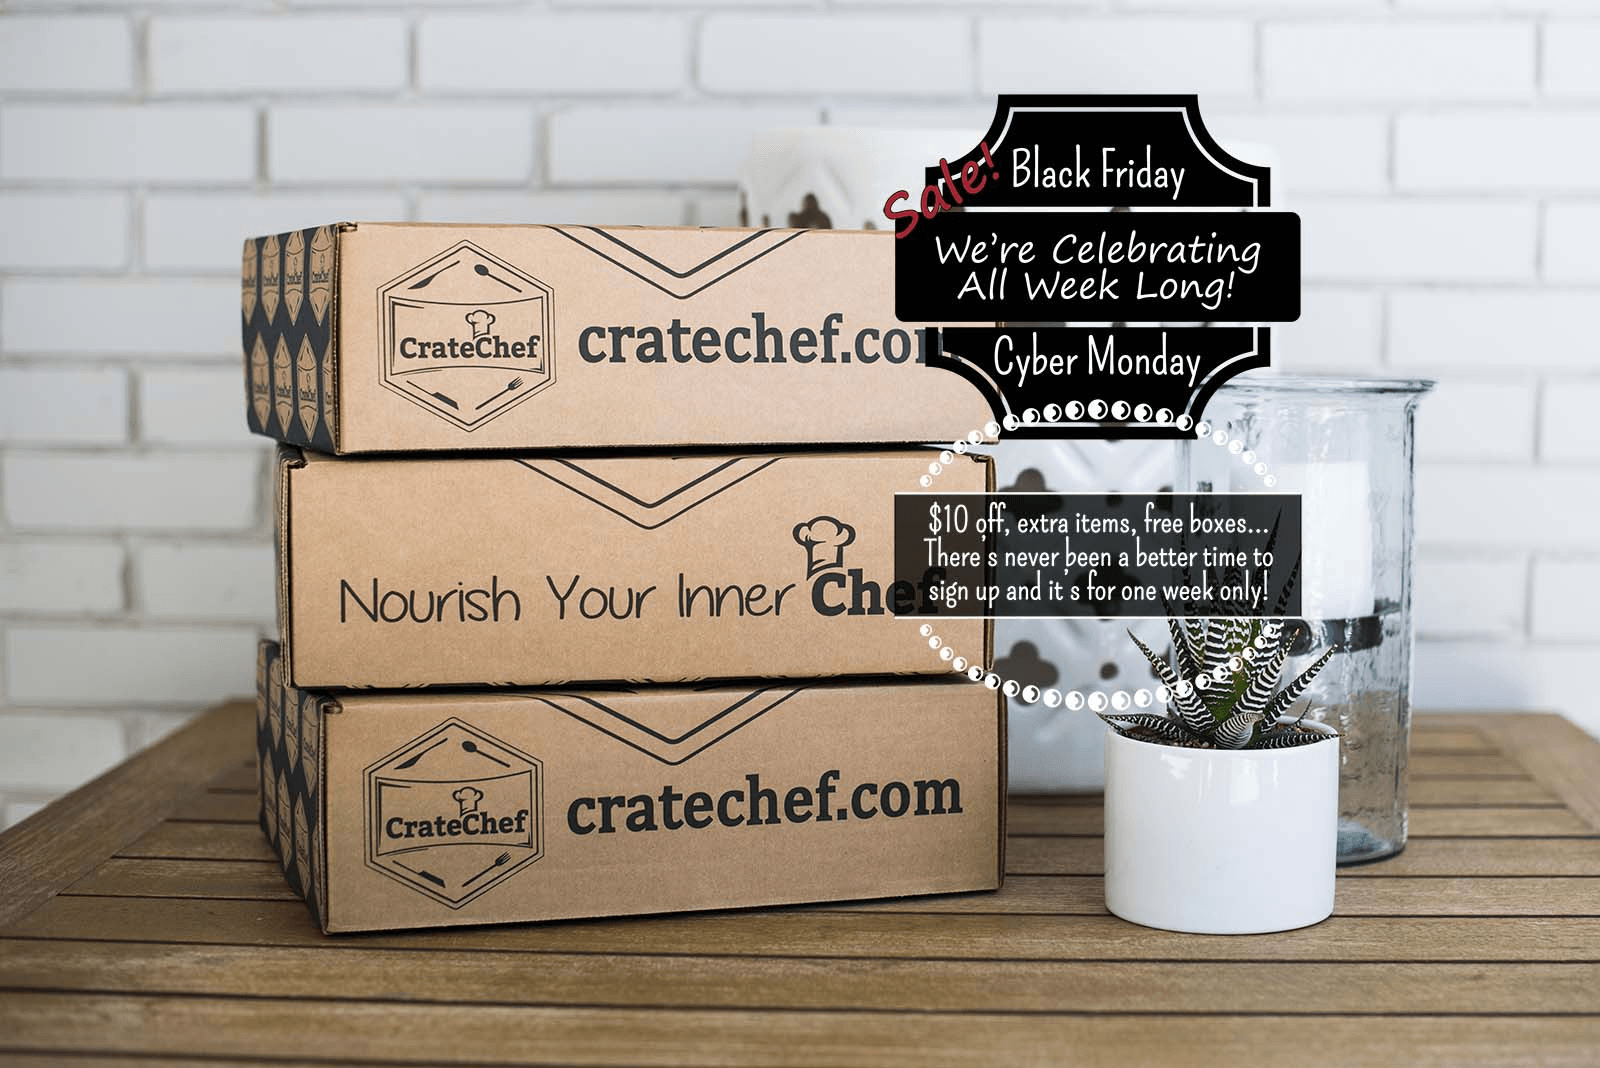 CrateChef Cyber Monday Subscription Box Deals: $10 off, Extra Items, or Free Box!